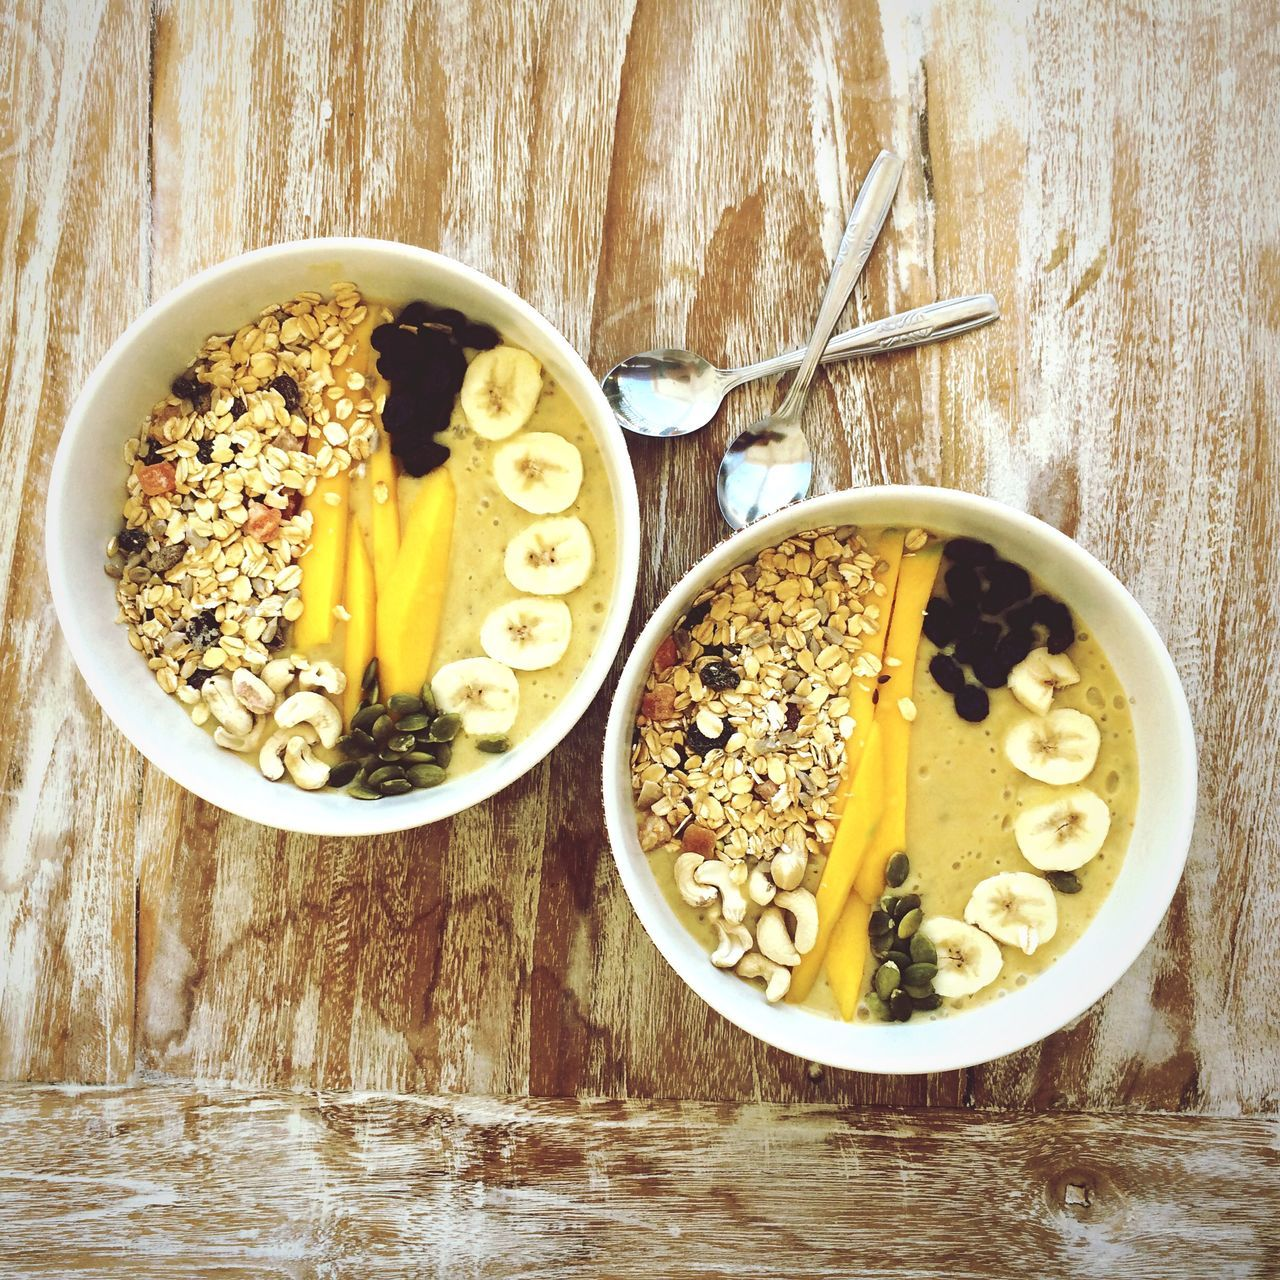 High angle view of breakfast in bowls on table